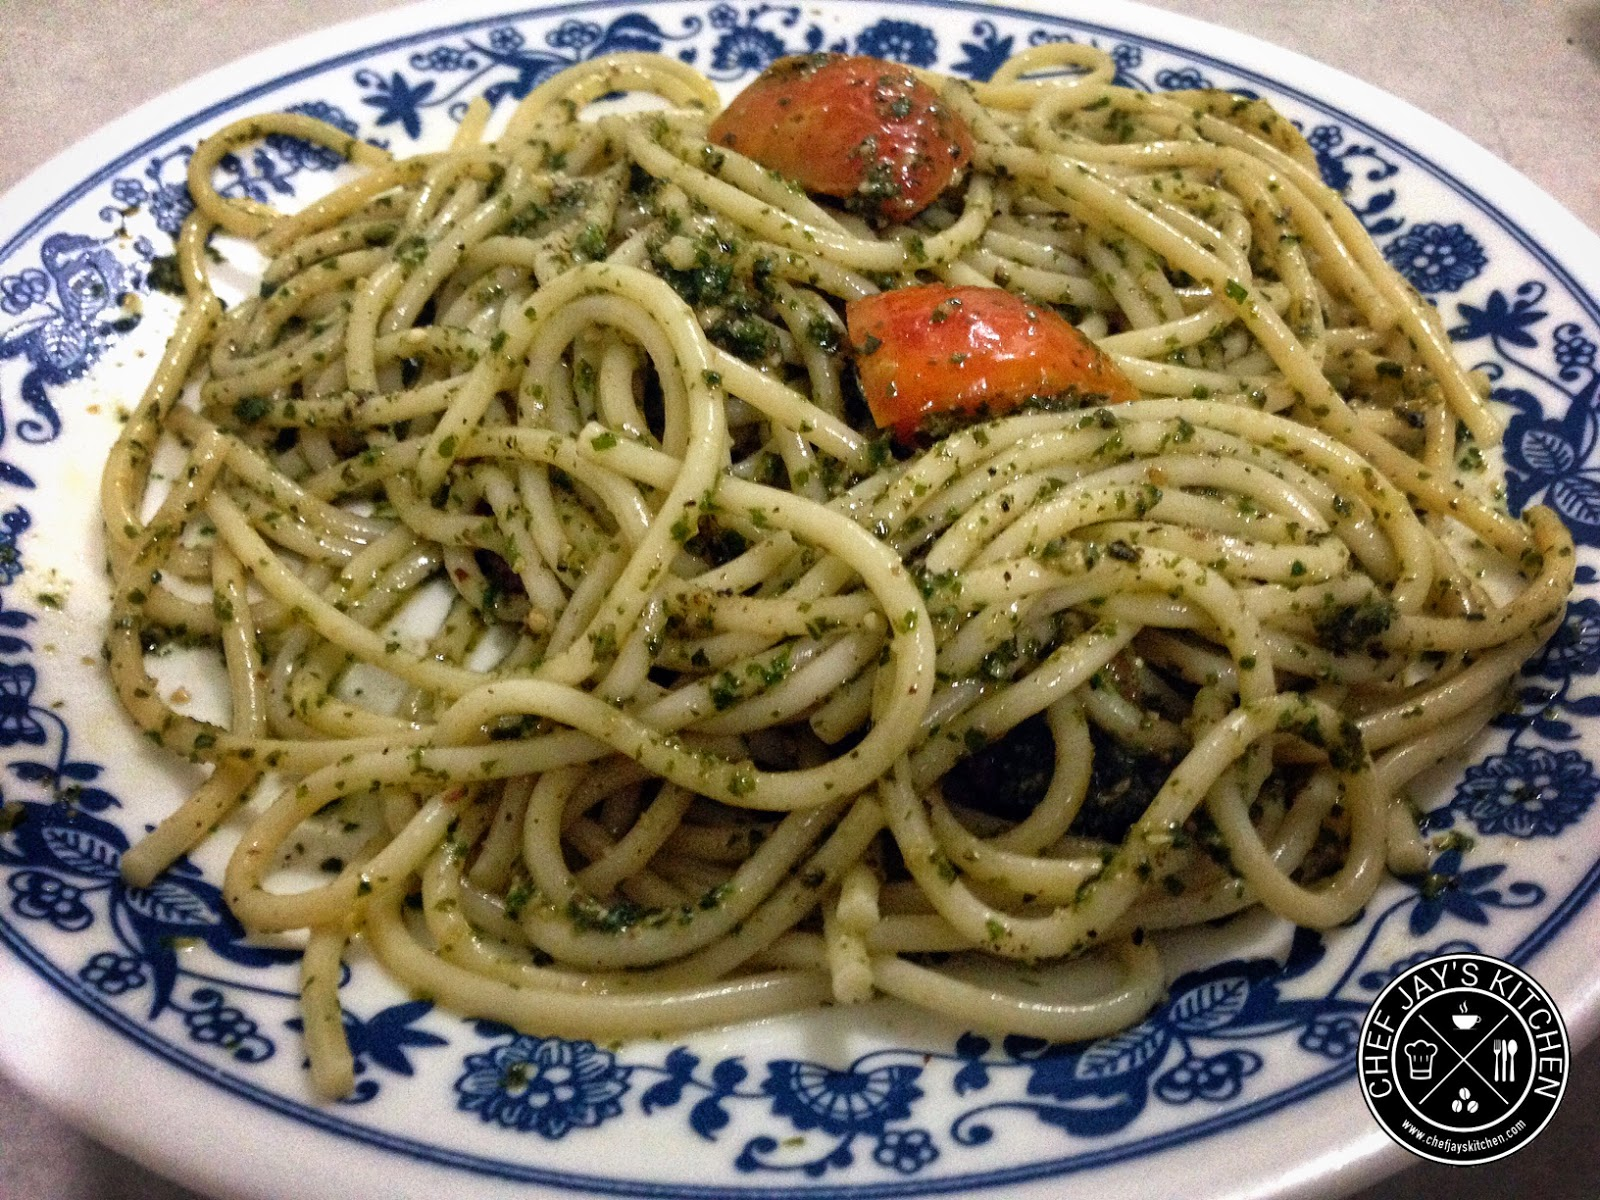 Erwan Heussaff's Pesto Pasta Recipe: is it Any Good?